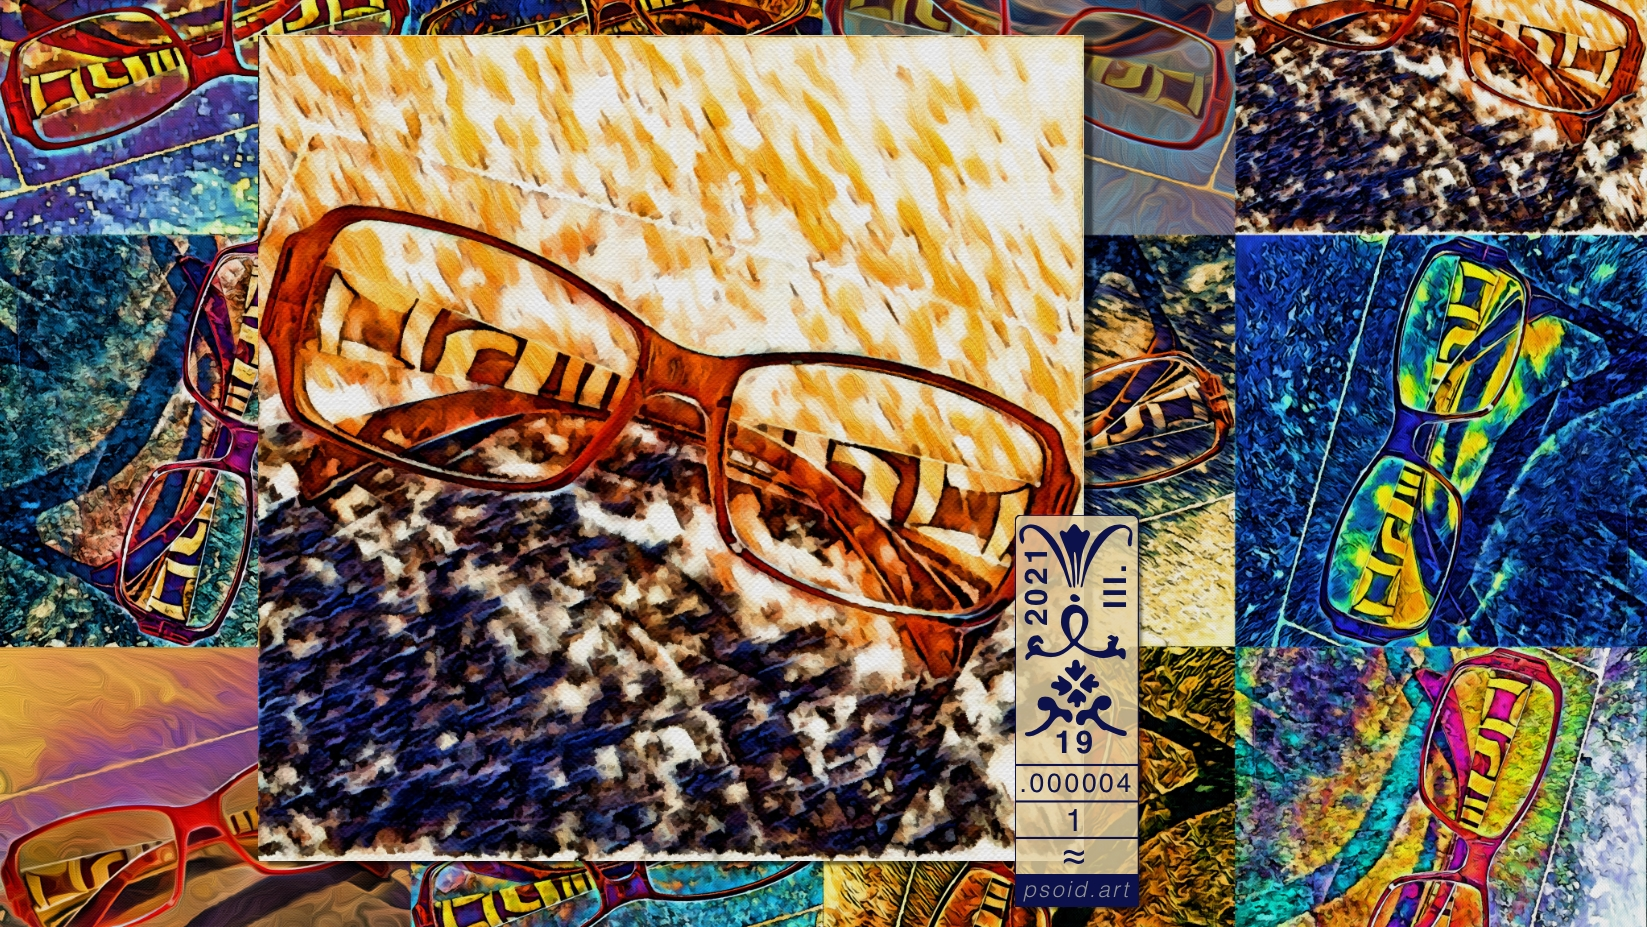 Mosaic: Spectacles - A RA-PS01D on psoid.art by Enmempin N. Midelobo